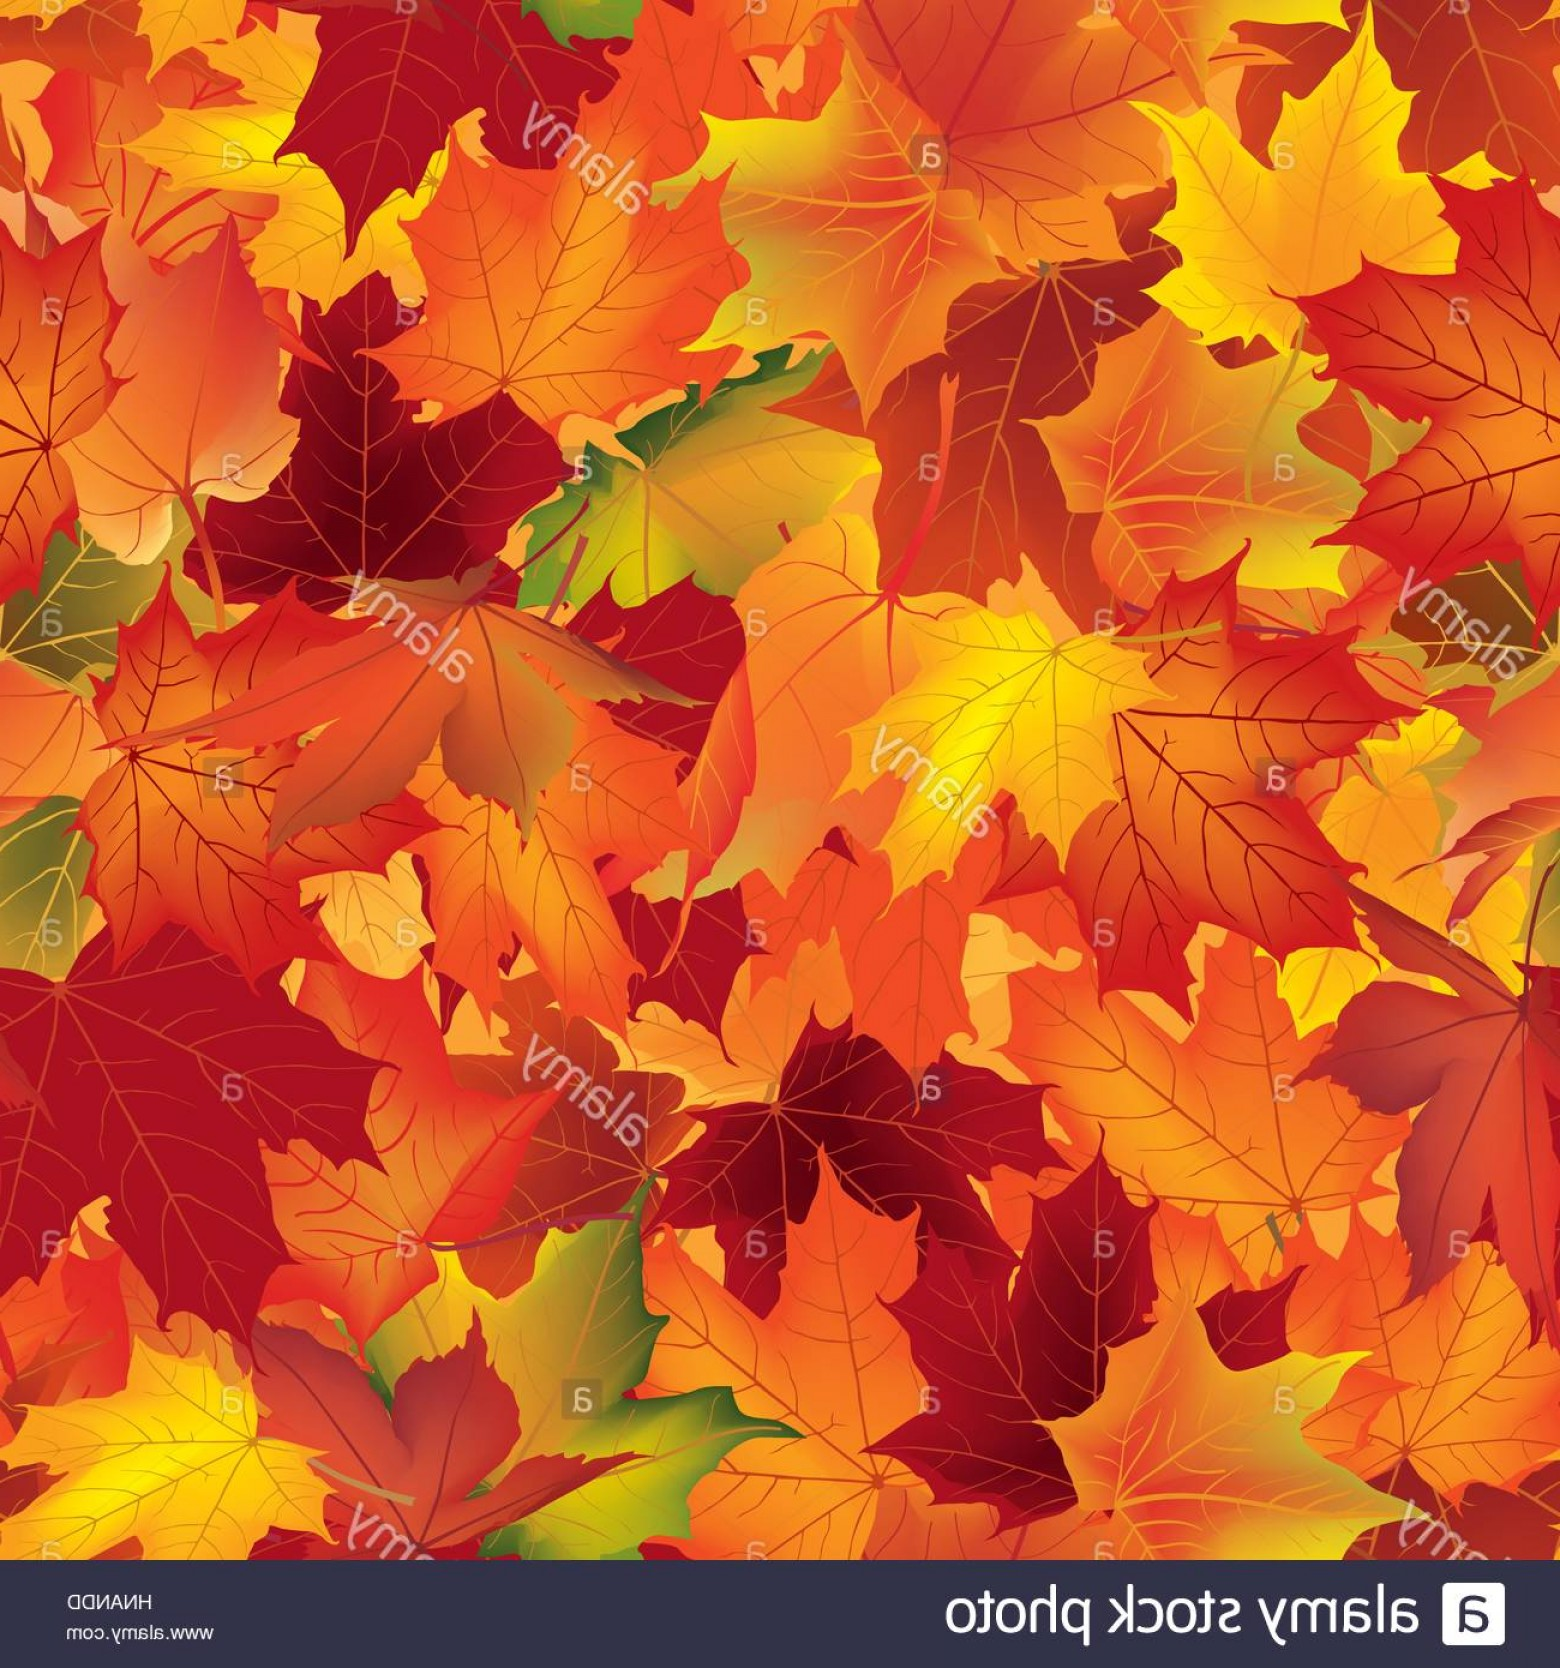 Autumn Seamless Vector: Stock Photo Autumn Texture Wallpaper With Maple Leaves Fall Seamless Pattern Nature